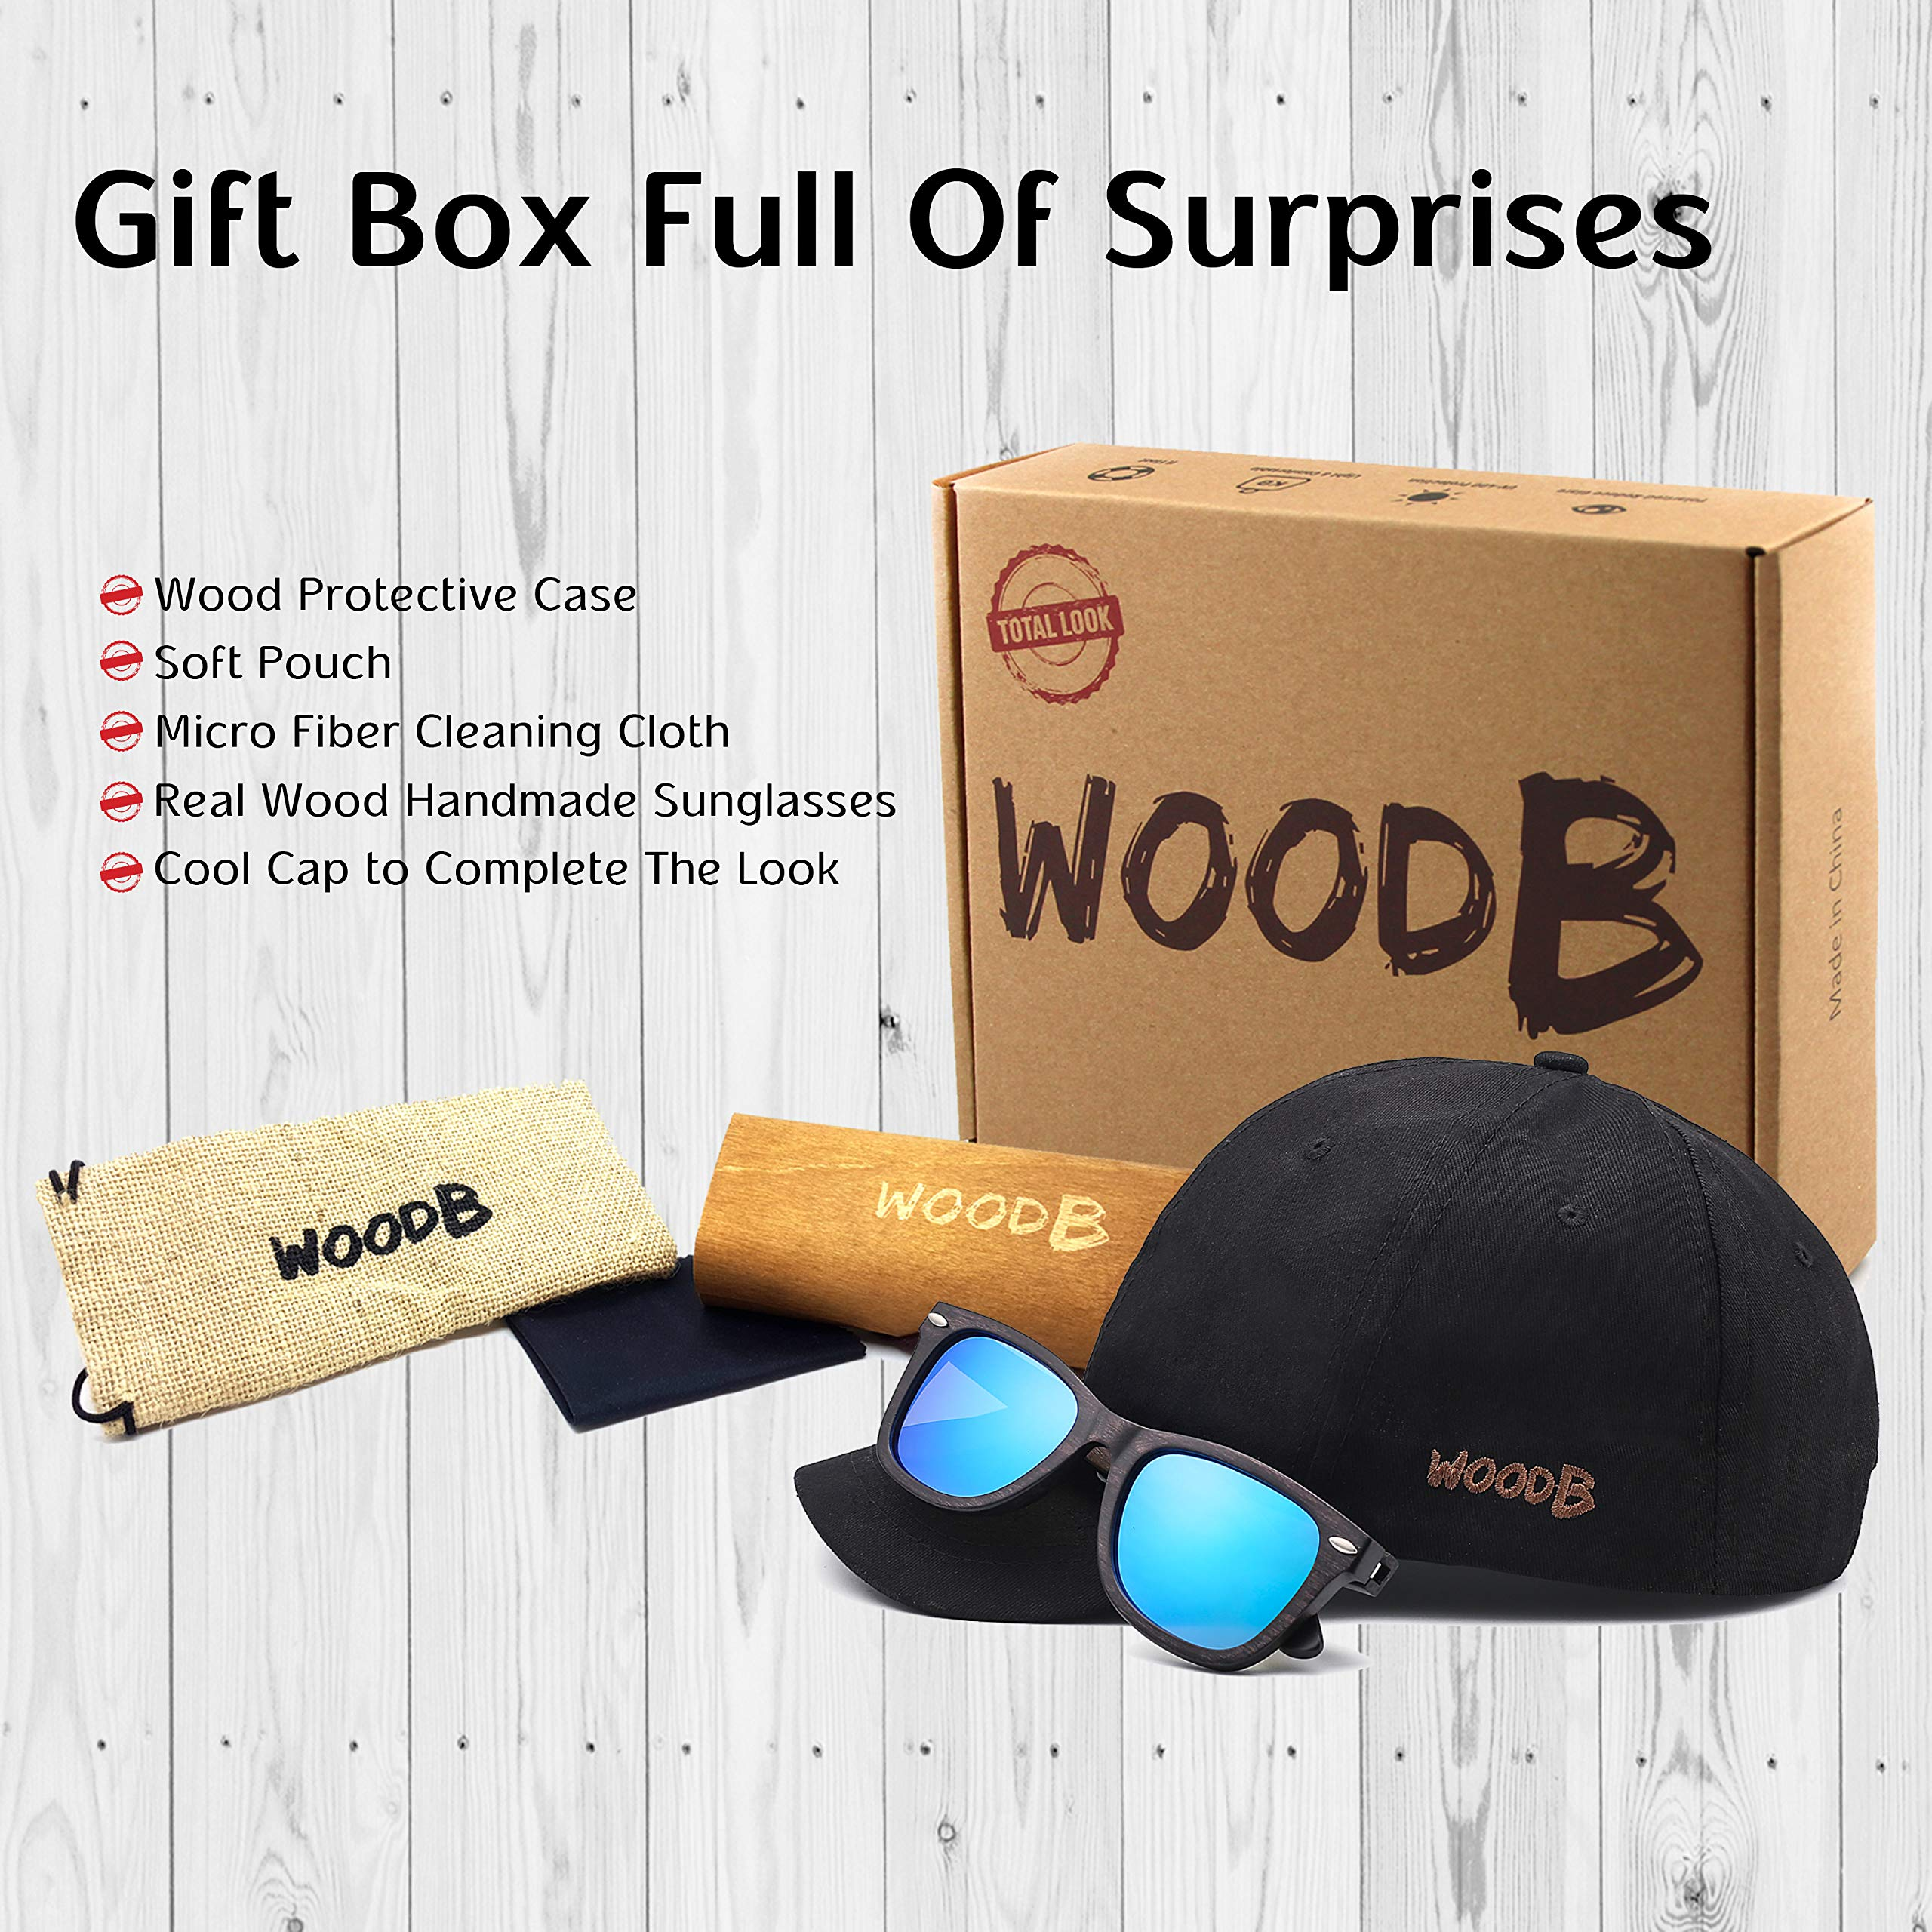 Real Wood Sunglasses Wayfarer UV-400 Polarized Lenses Plus Cap in Gift box by WOODB (Image #2)